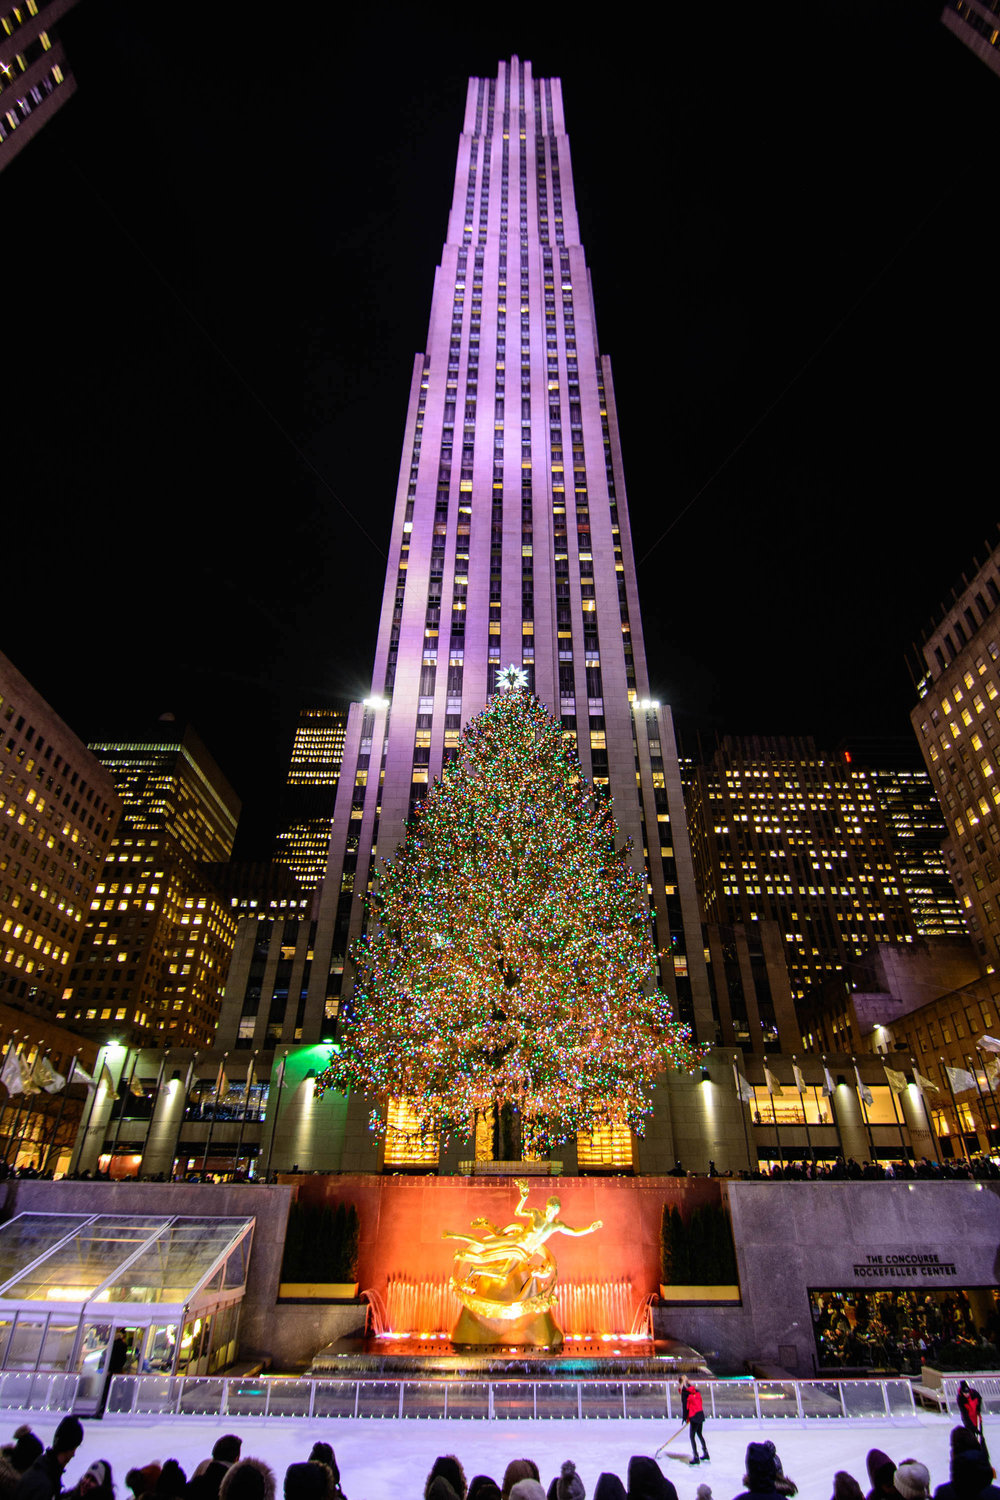 Rockefeller Center Christmas Tree. Right before this photo was taken, we all witnessed a proposal on the ice!